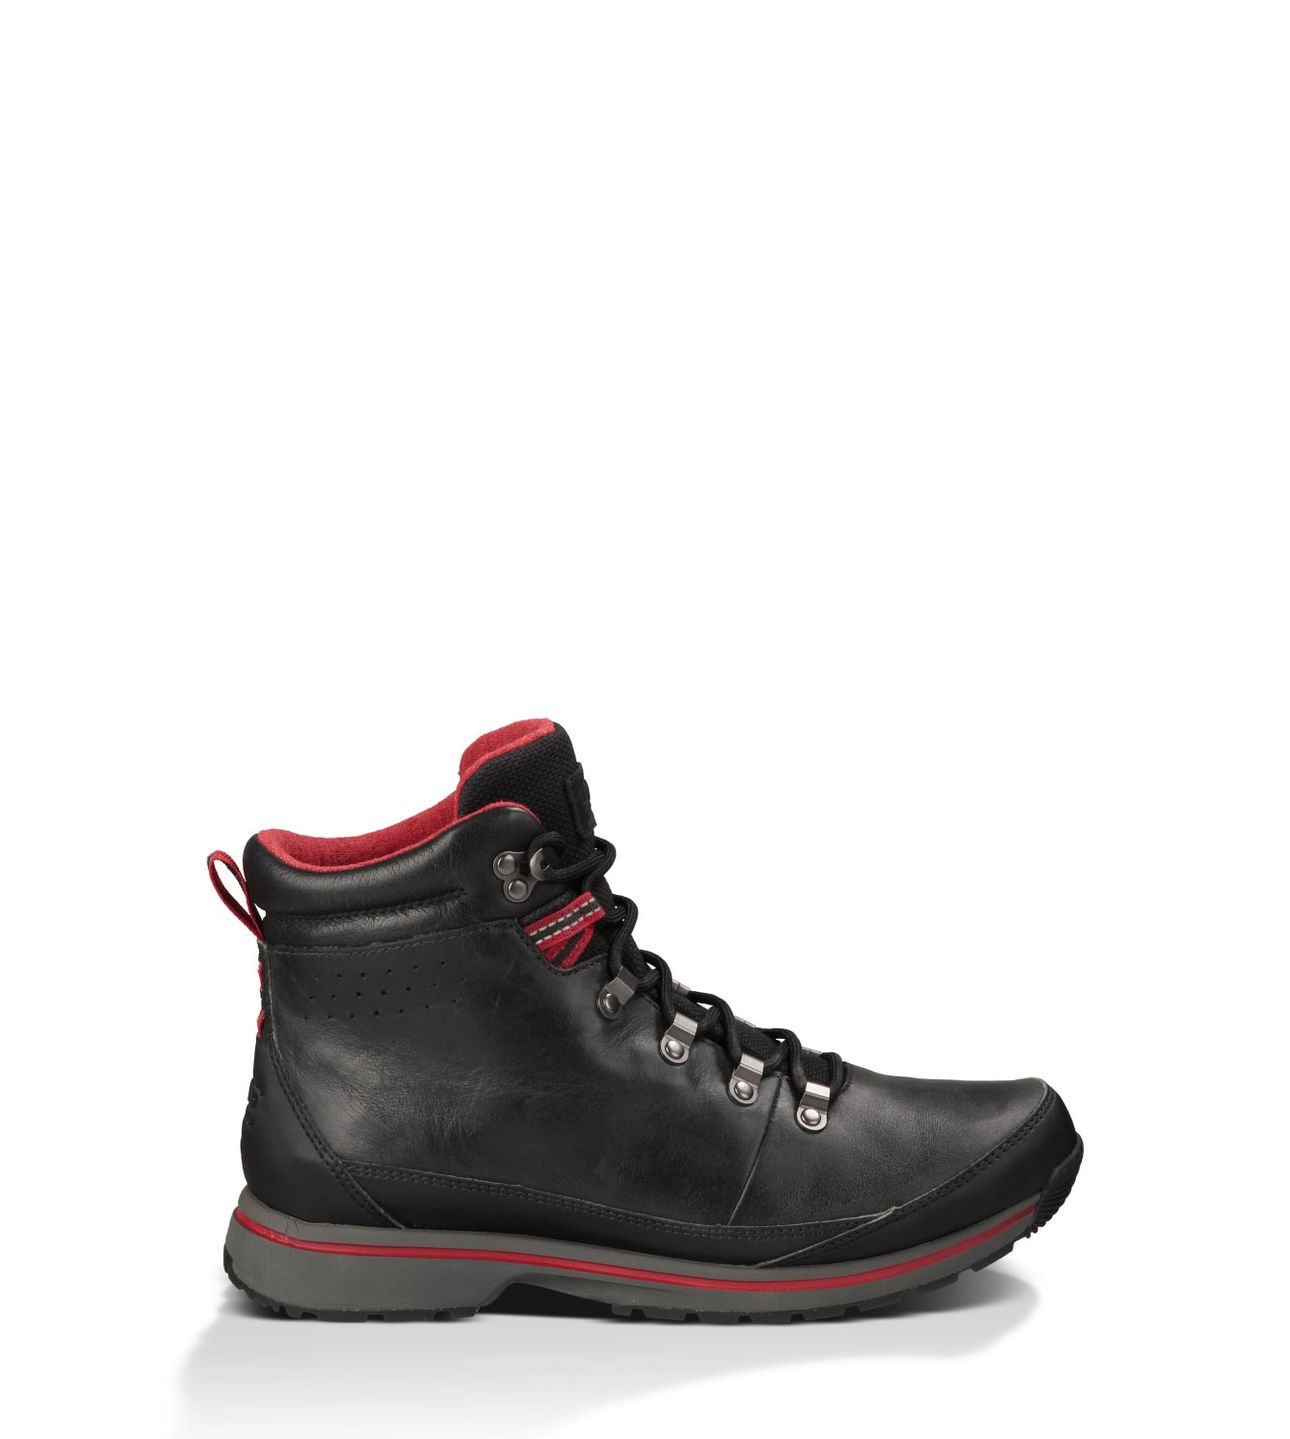 The OFFICIAL UGG® store has the Ellison for Men in the latest colors and styles with FREE Returns & Exchanges. UGGAustralia.com.